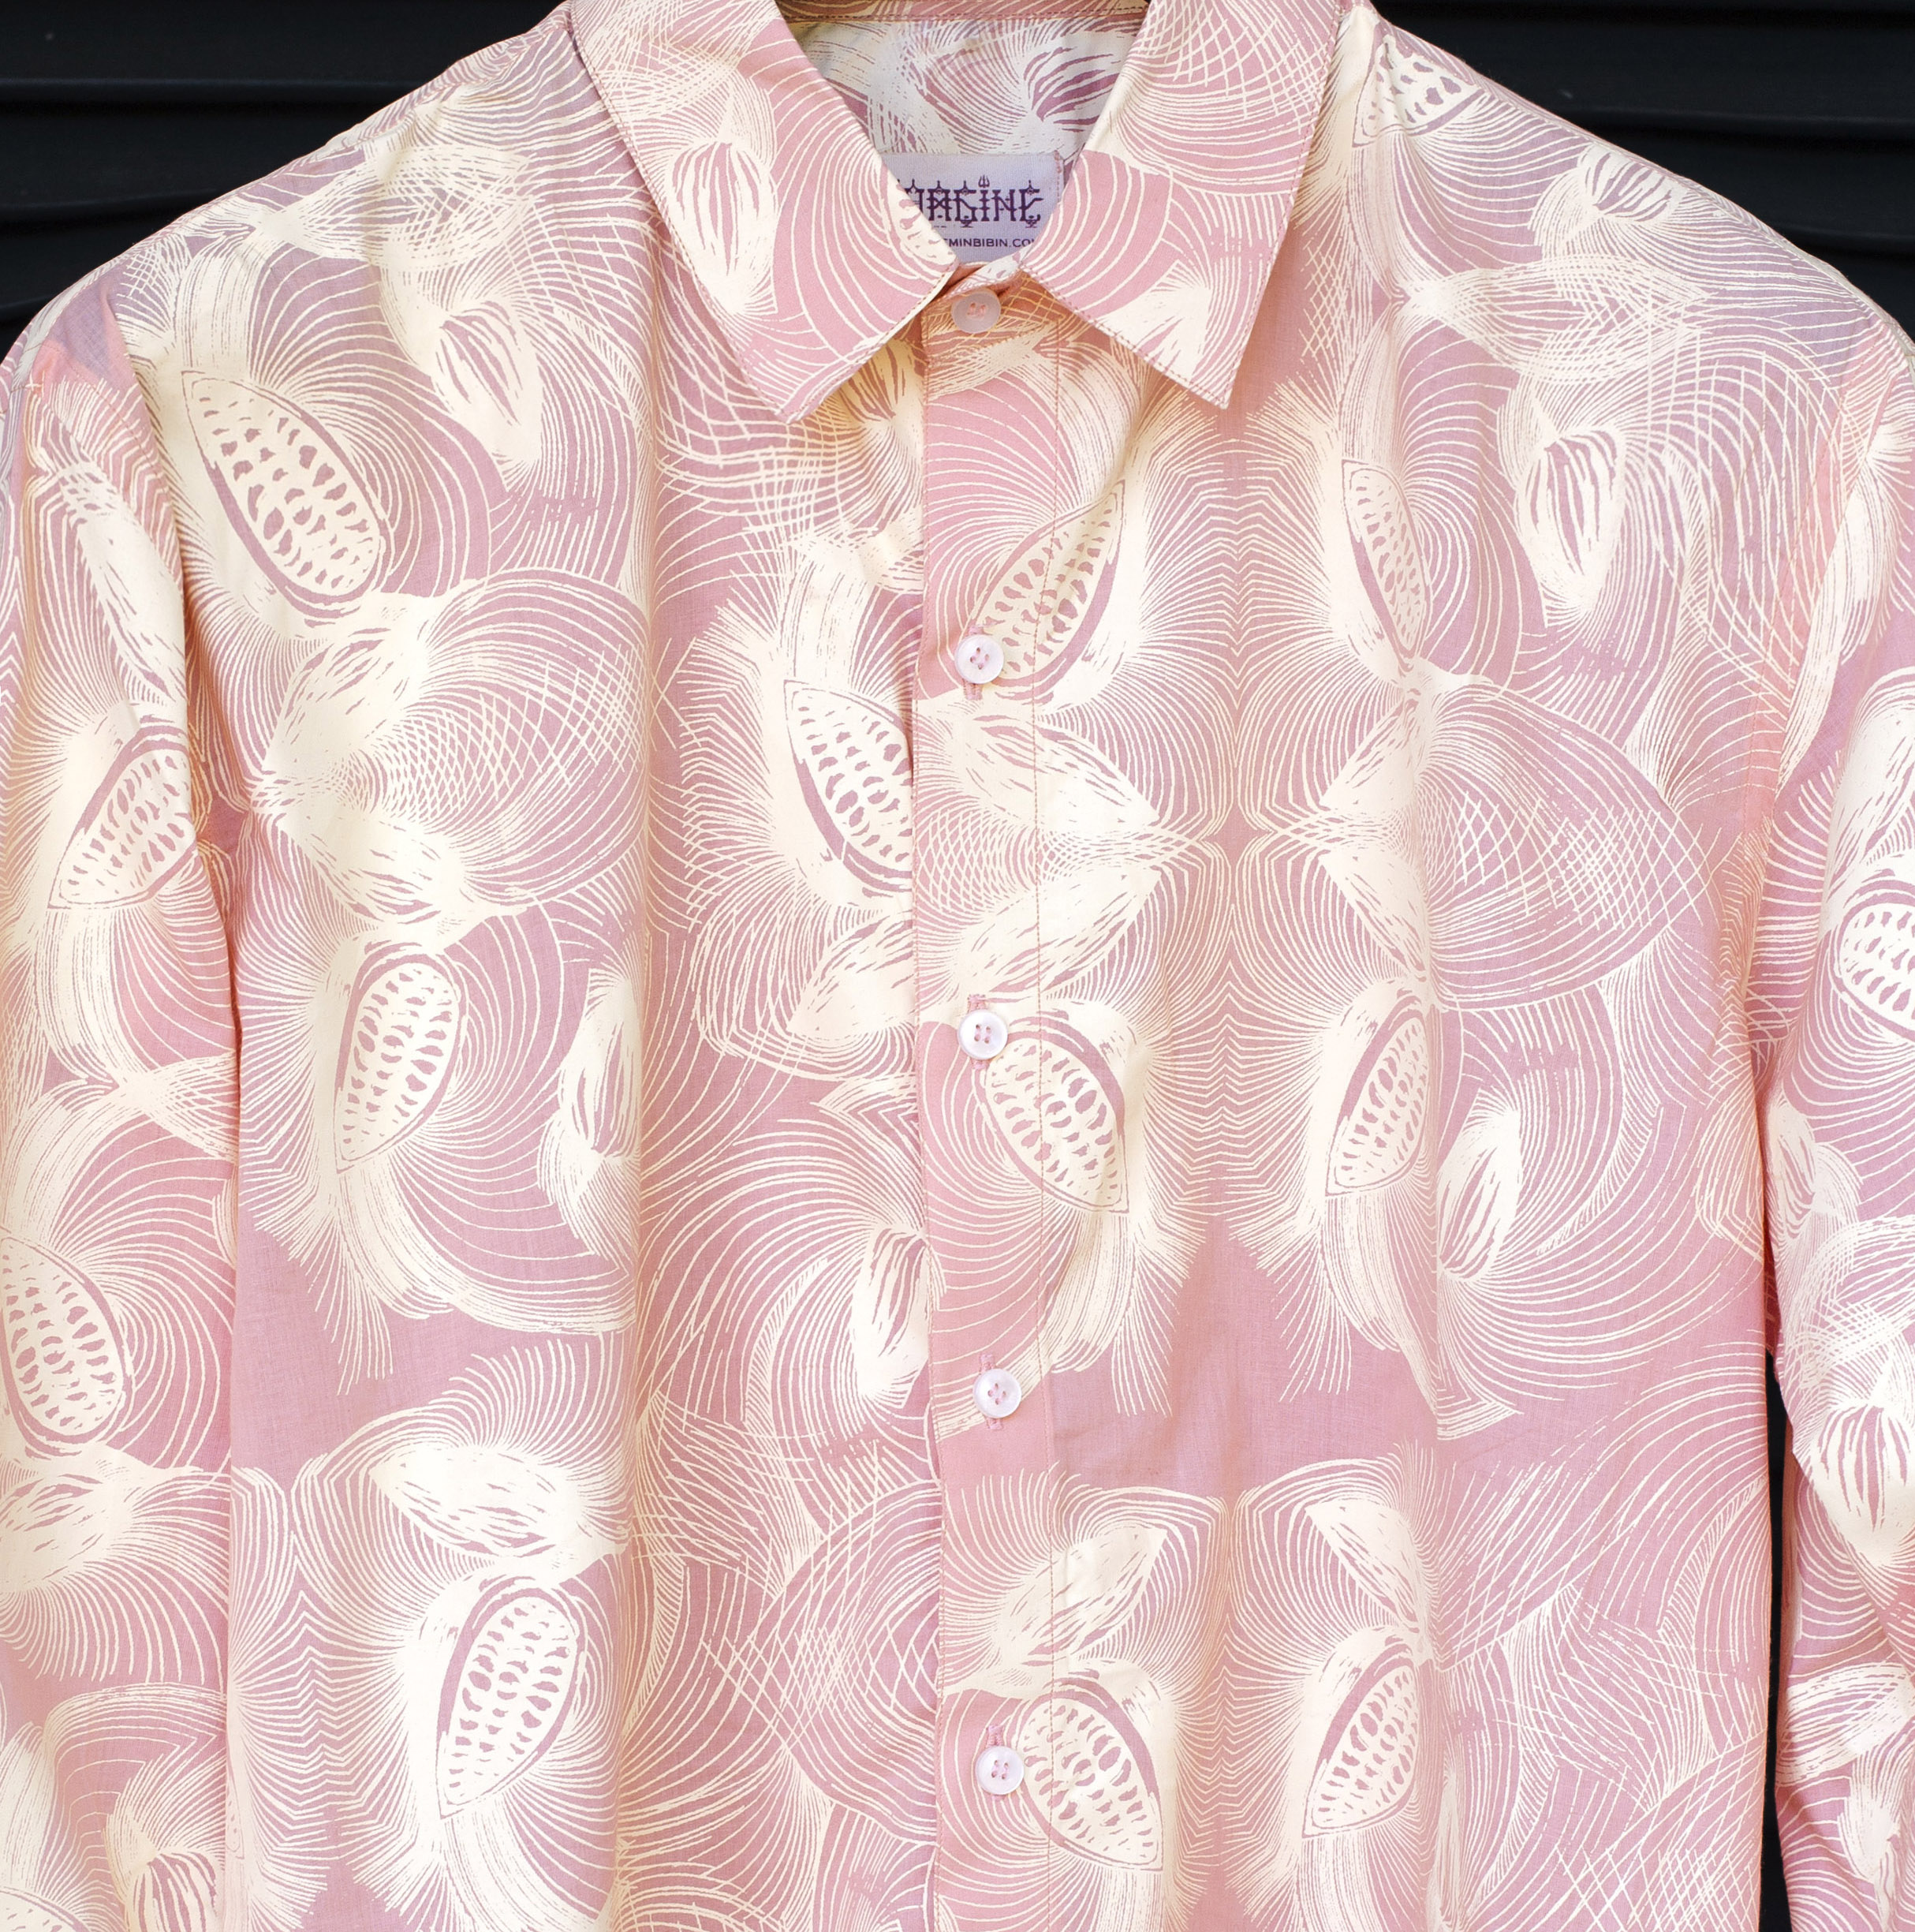 "SHOP NOW - MENS SHIRTS""Imaginary animals and plants"""